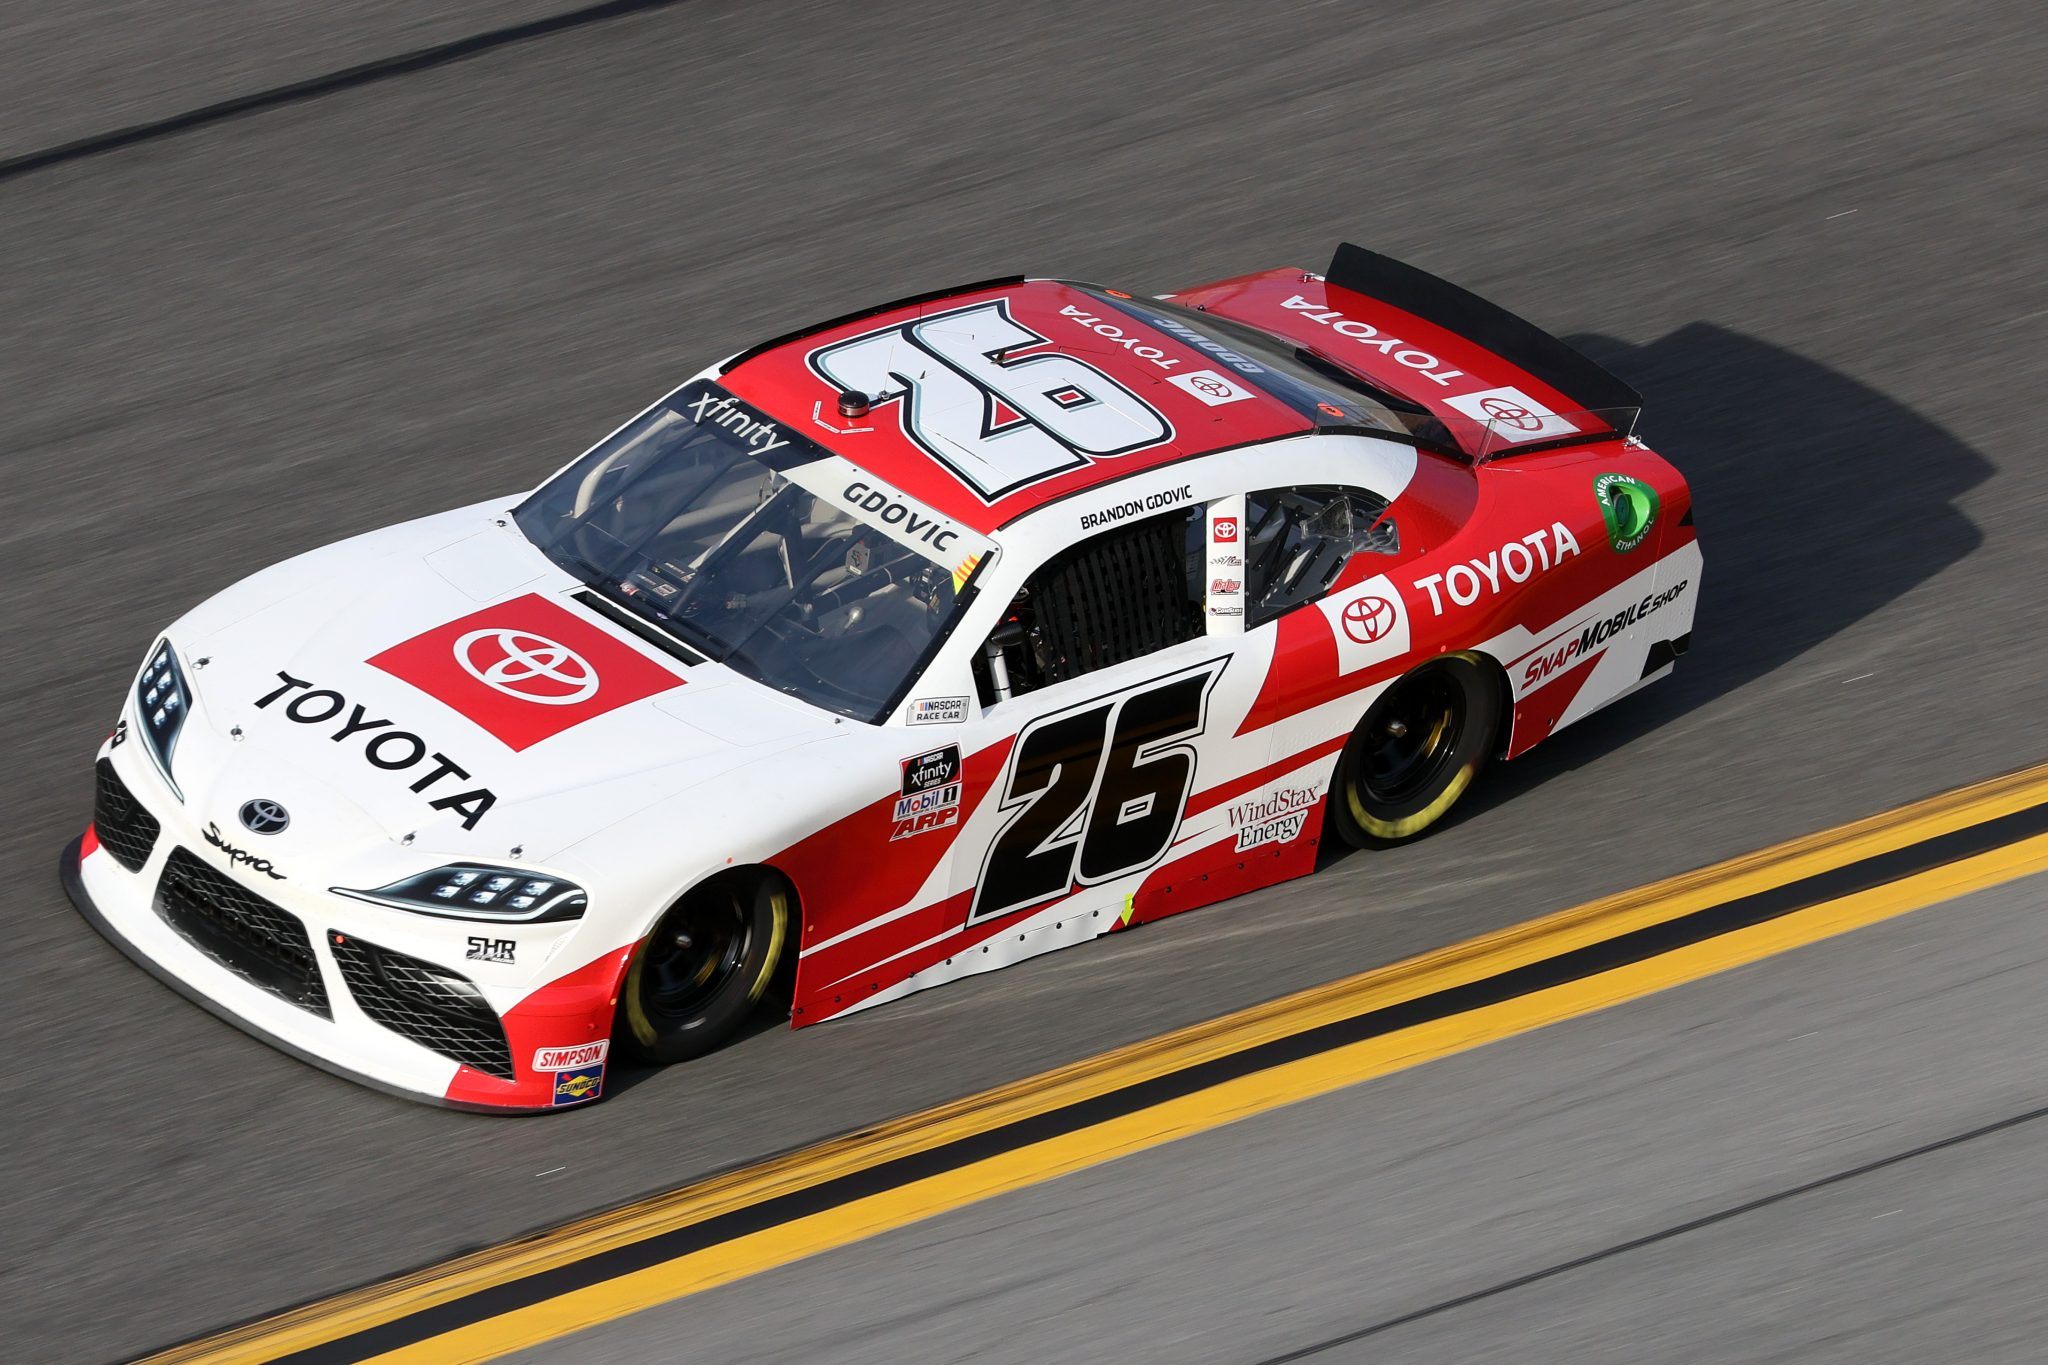 DAYTONA BEACH, FLORIDA - FEBRUARY 12: Brandon Gdovic, driver of the #26 Toyota Racing Toyota, practices for the NASCAR Xfinity Series Beef. It's What's For Dinner. 300 at Daytona International Speedway on February 12, 2021 in Daytona Beach, Florida. (Photo by James Gilbert/Getty Images) | Getty Images